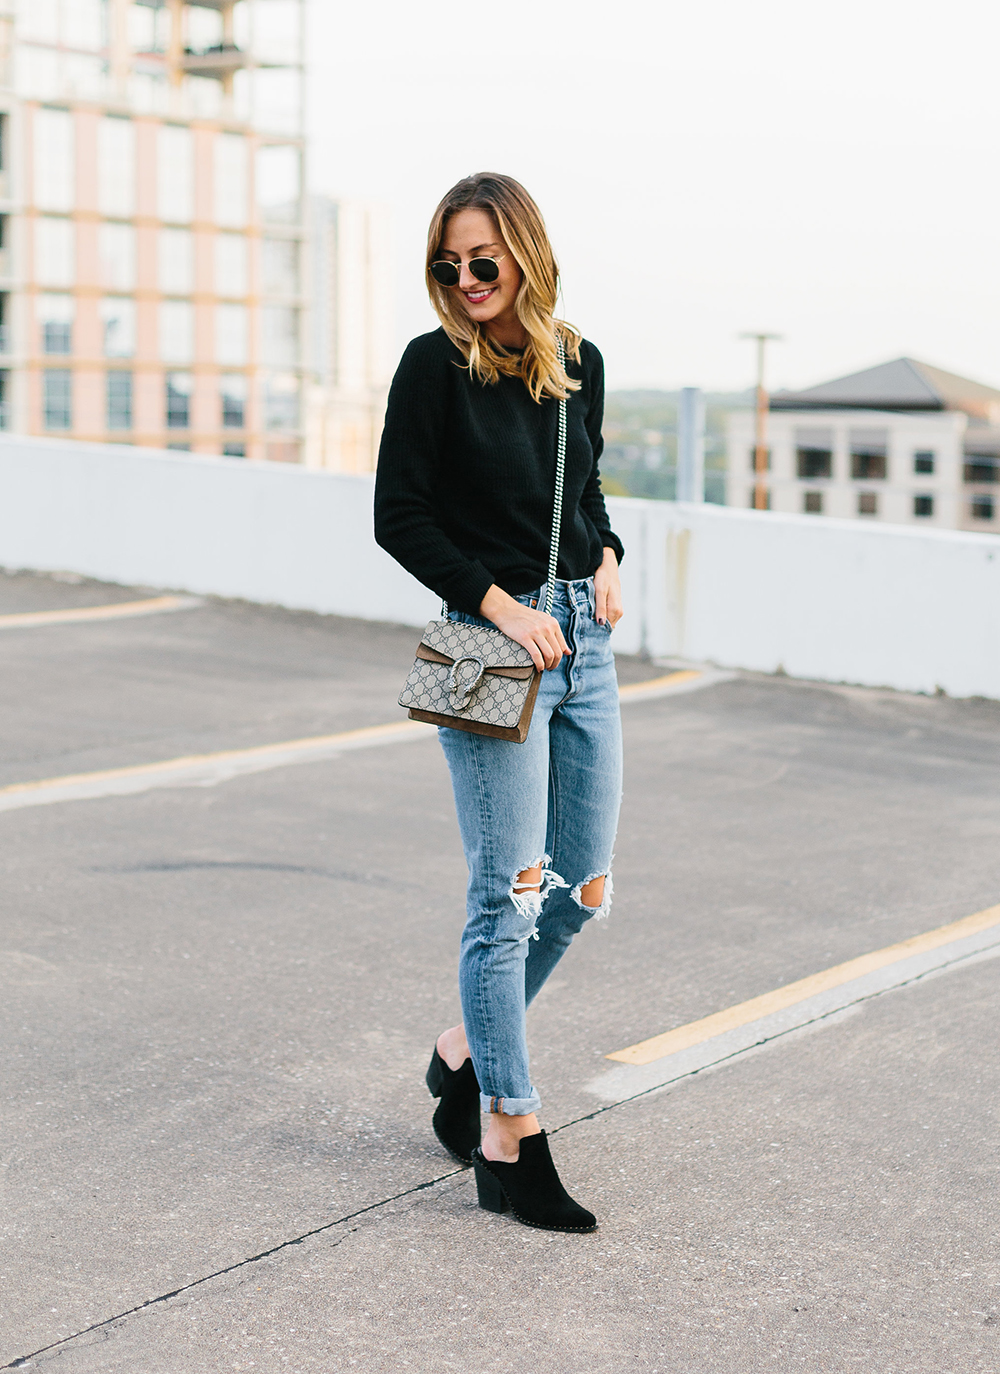 livvyland-blog-olivia-watson-topshop-black-knit-sweater-cozy-slip-on-black-boho-mules-levis-501-6